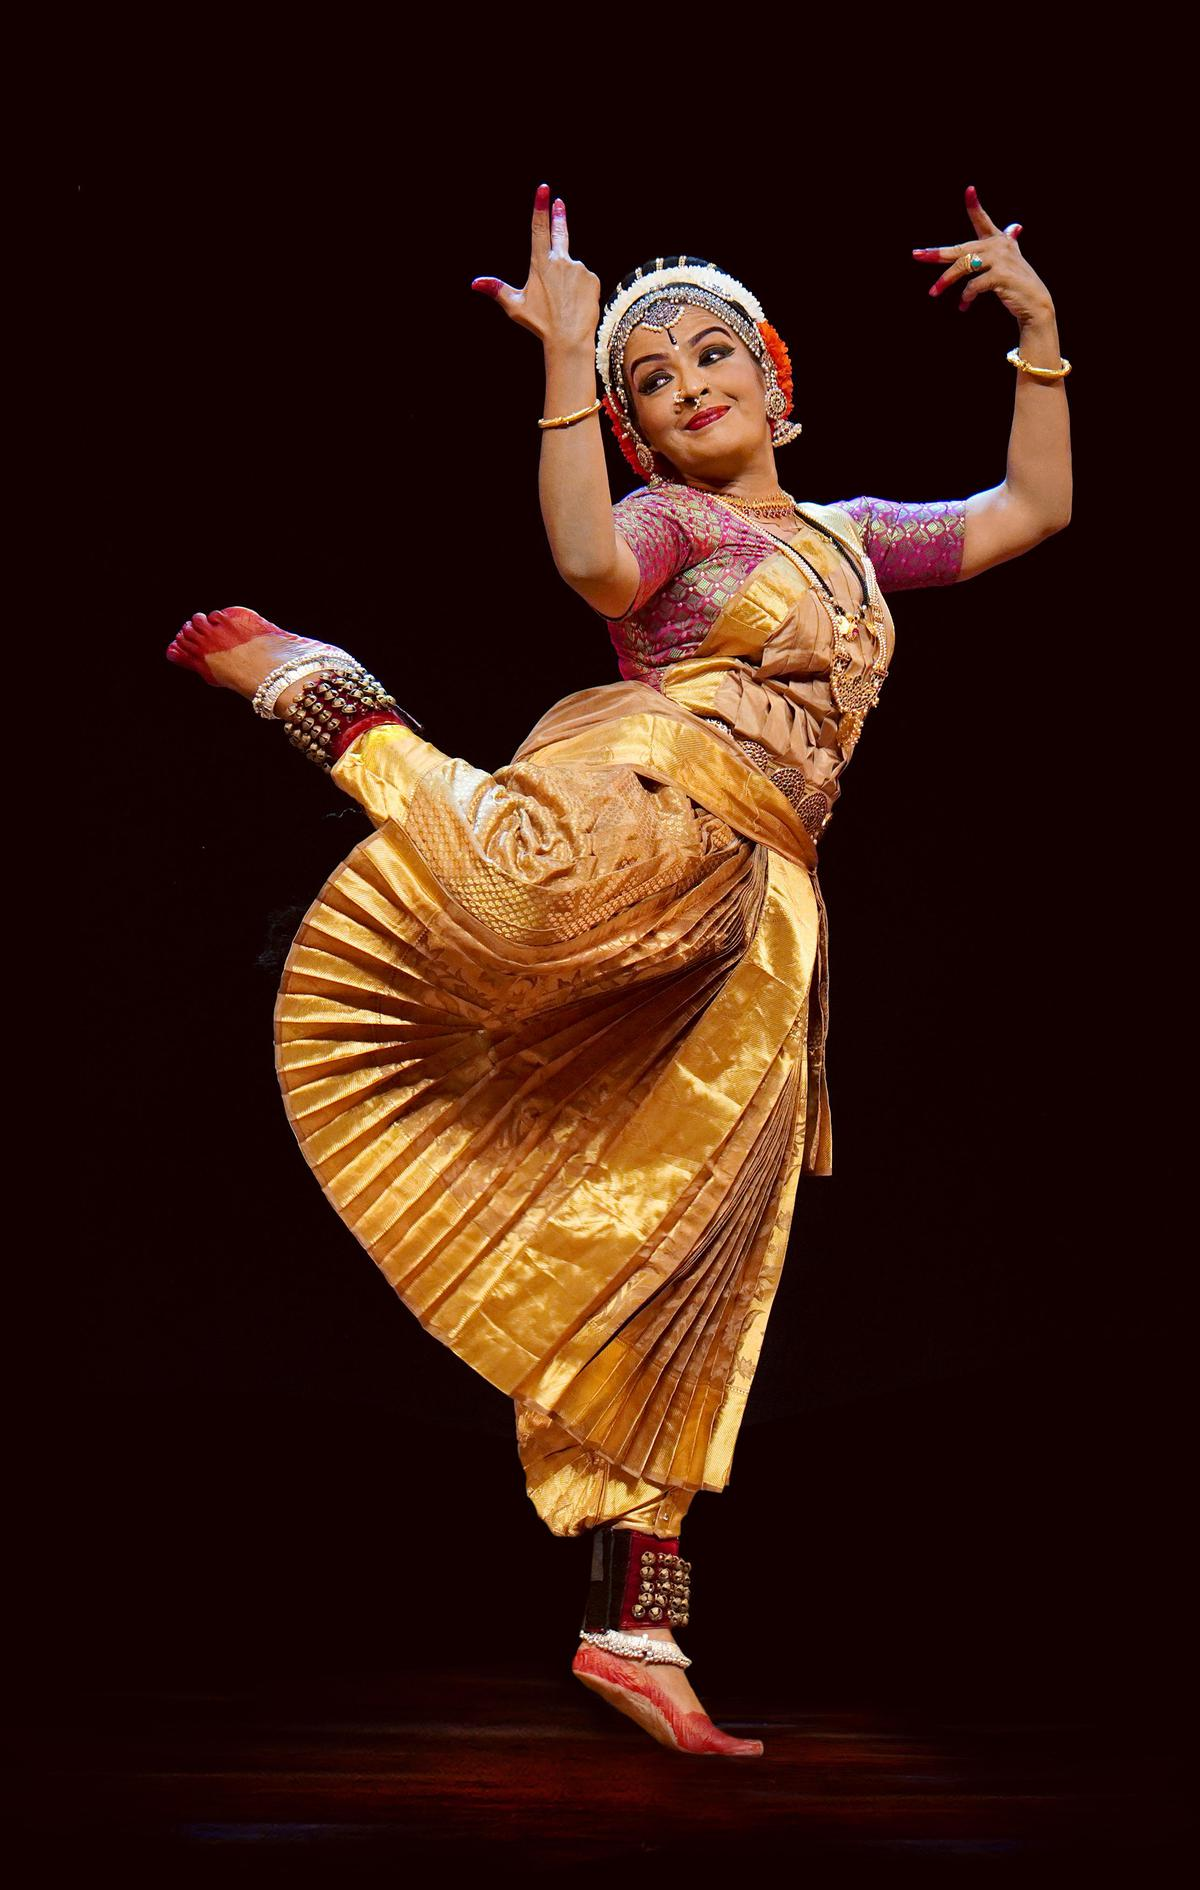 Image of Dancer, Entertainment, Performing arts, Dance, Performance, Folk dance etc.